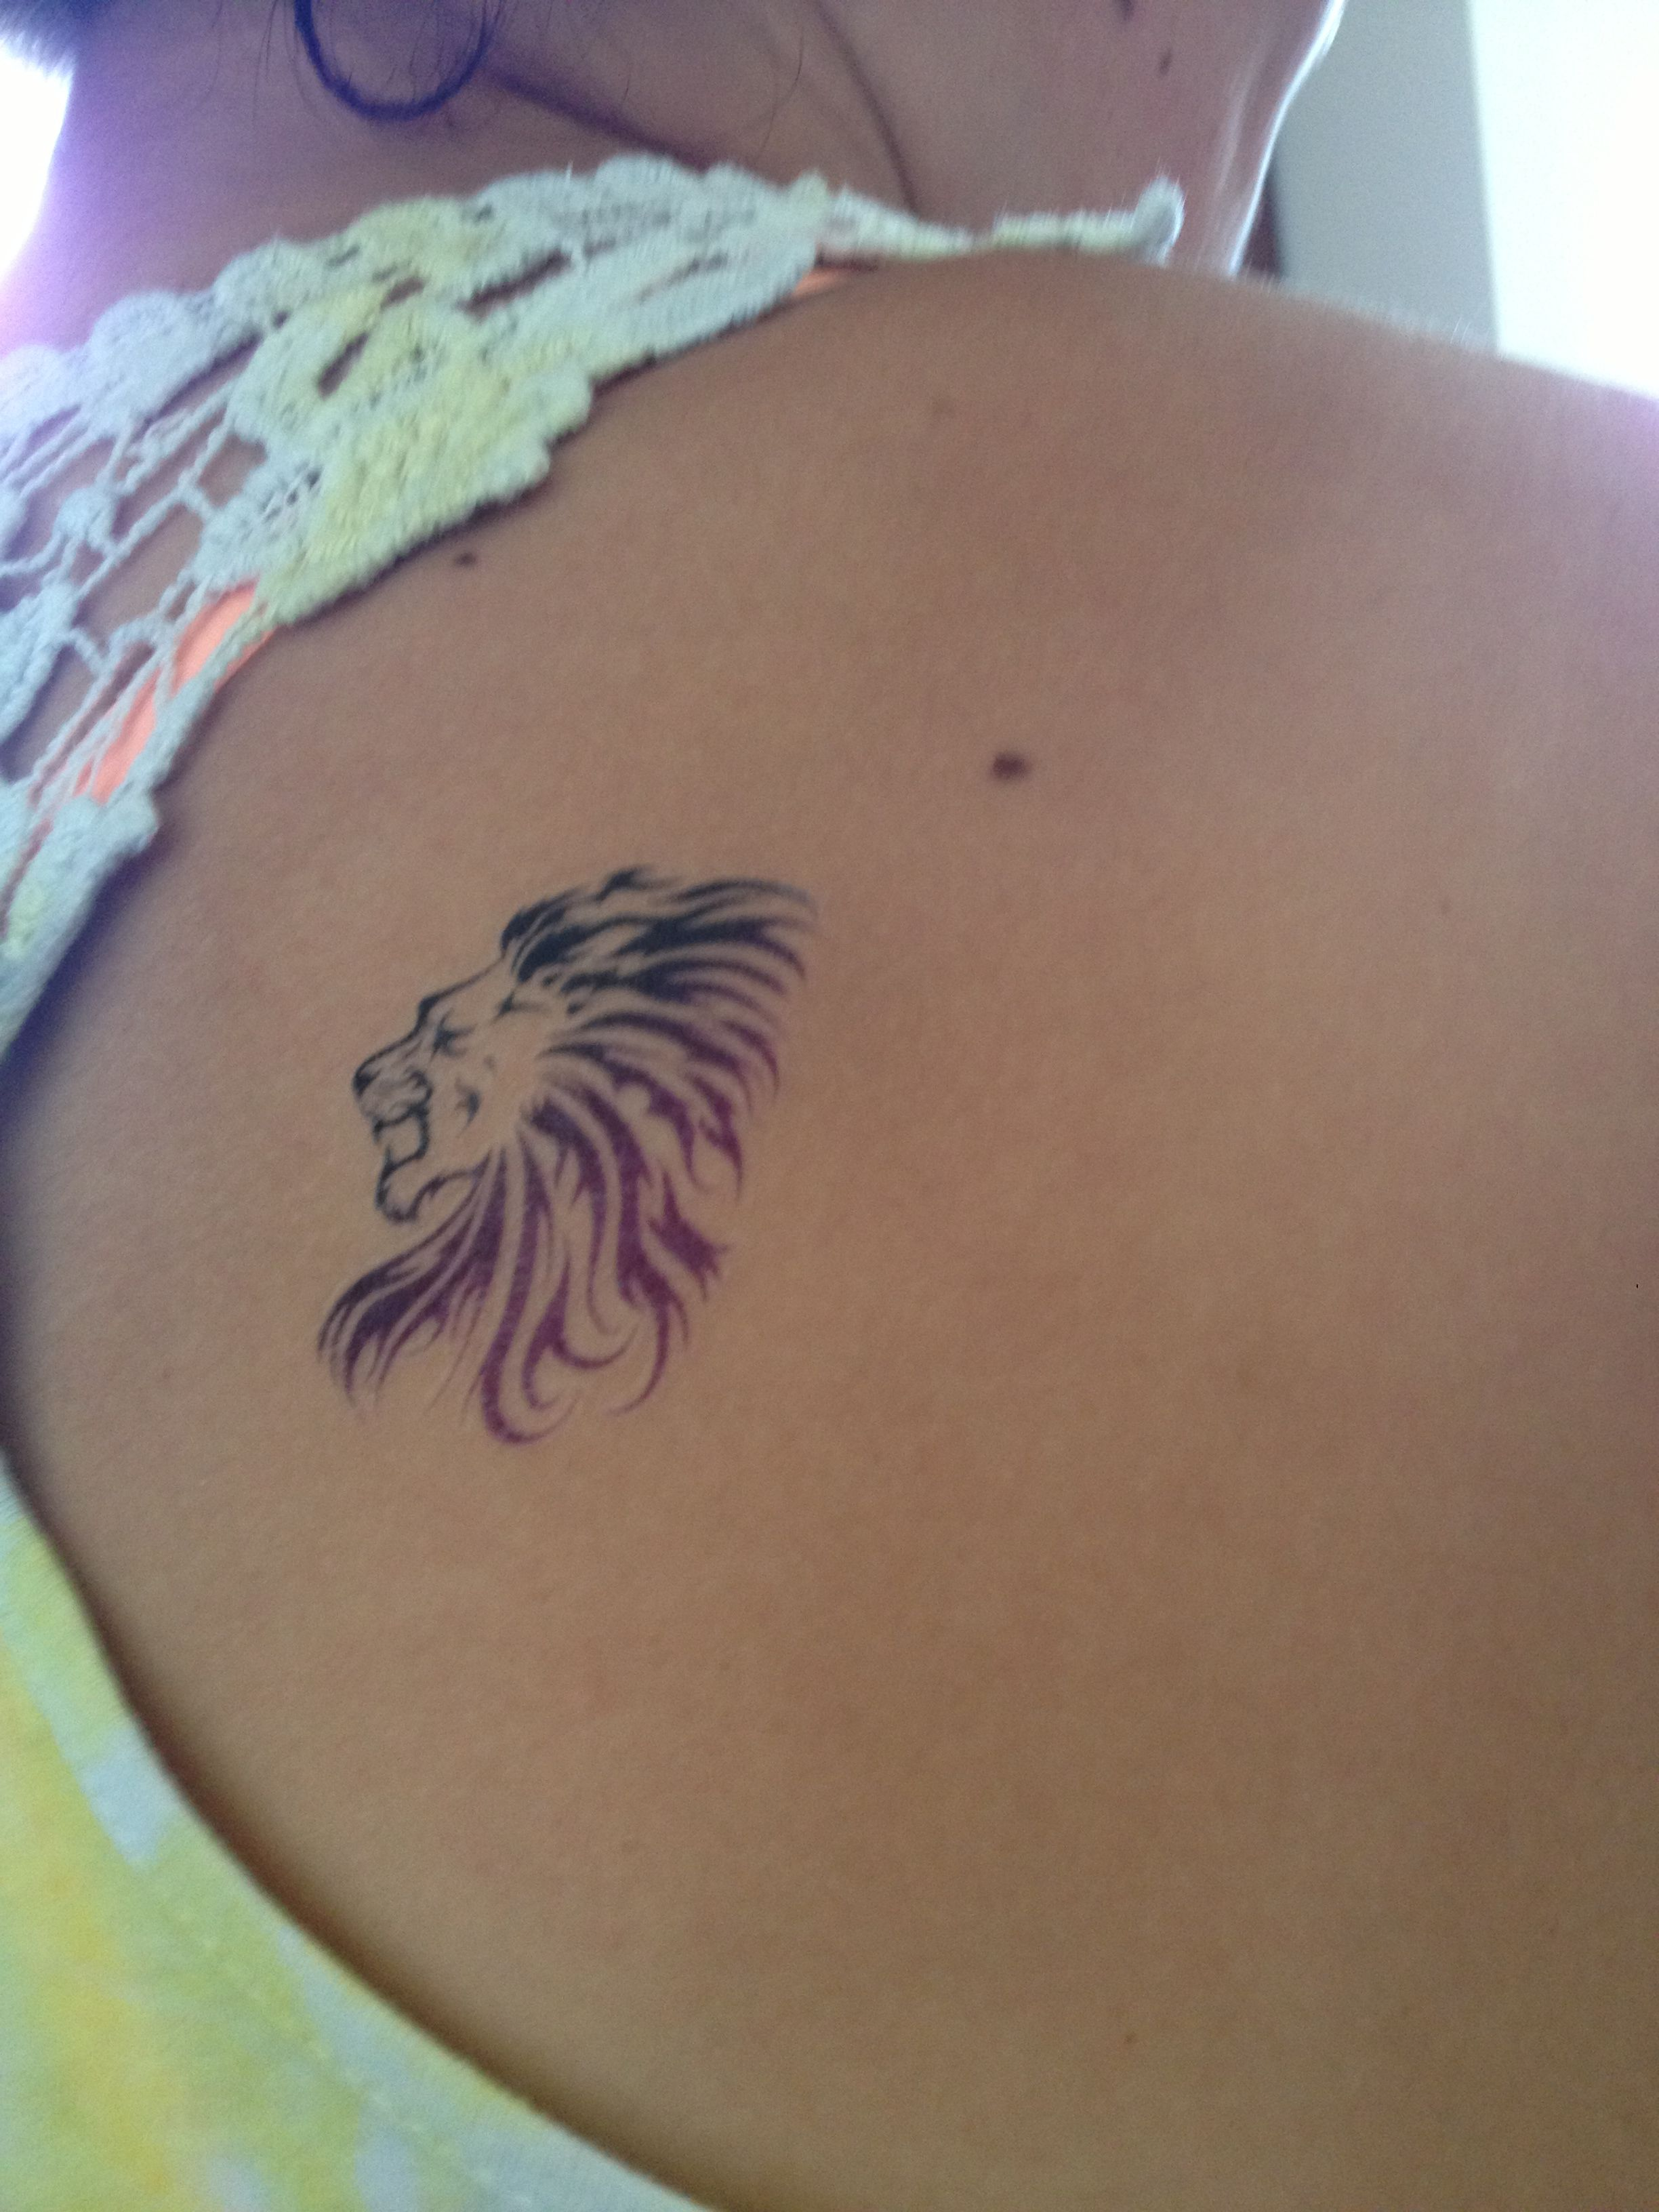 Small Lion Tattoo On Shoulder For Leo Trinity S Sign Small Lion Tattoo Shoulder Tattoo Small Lion Tattoo For Women